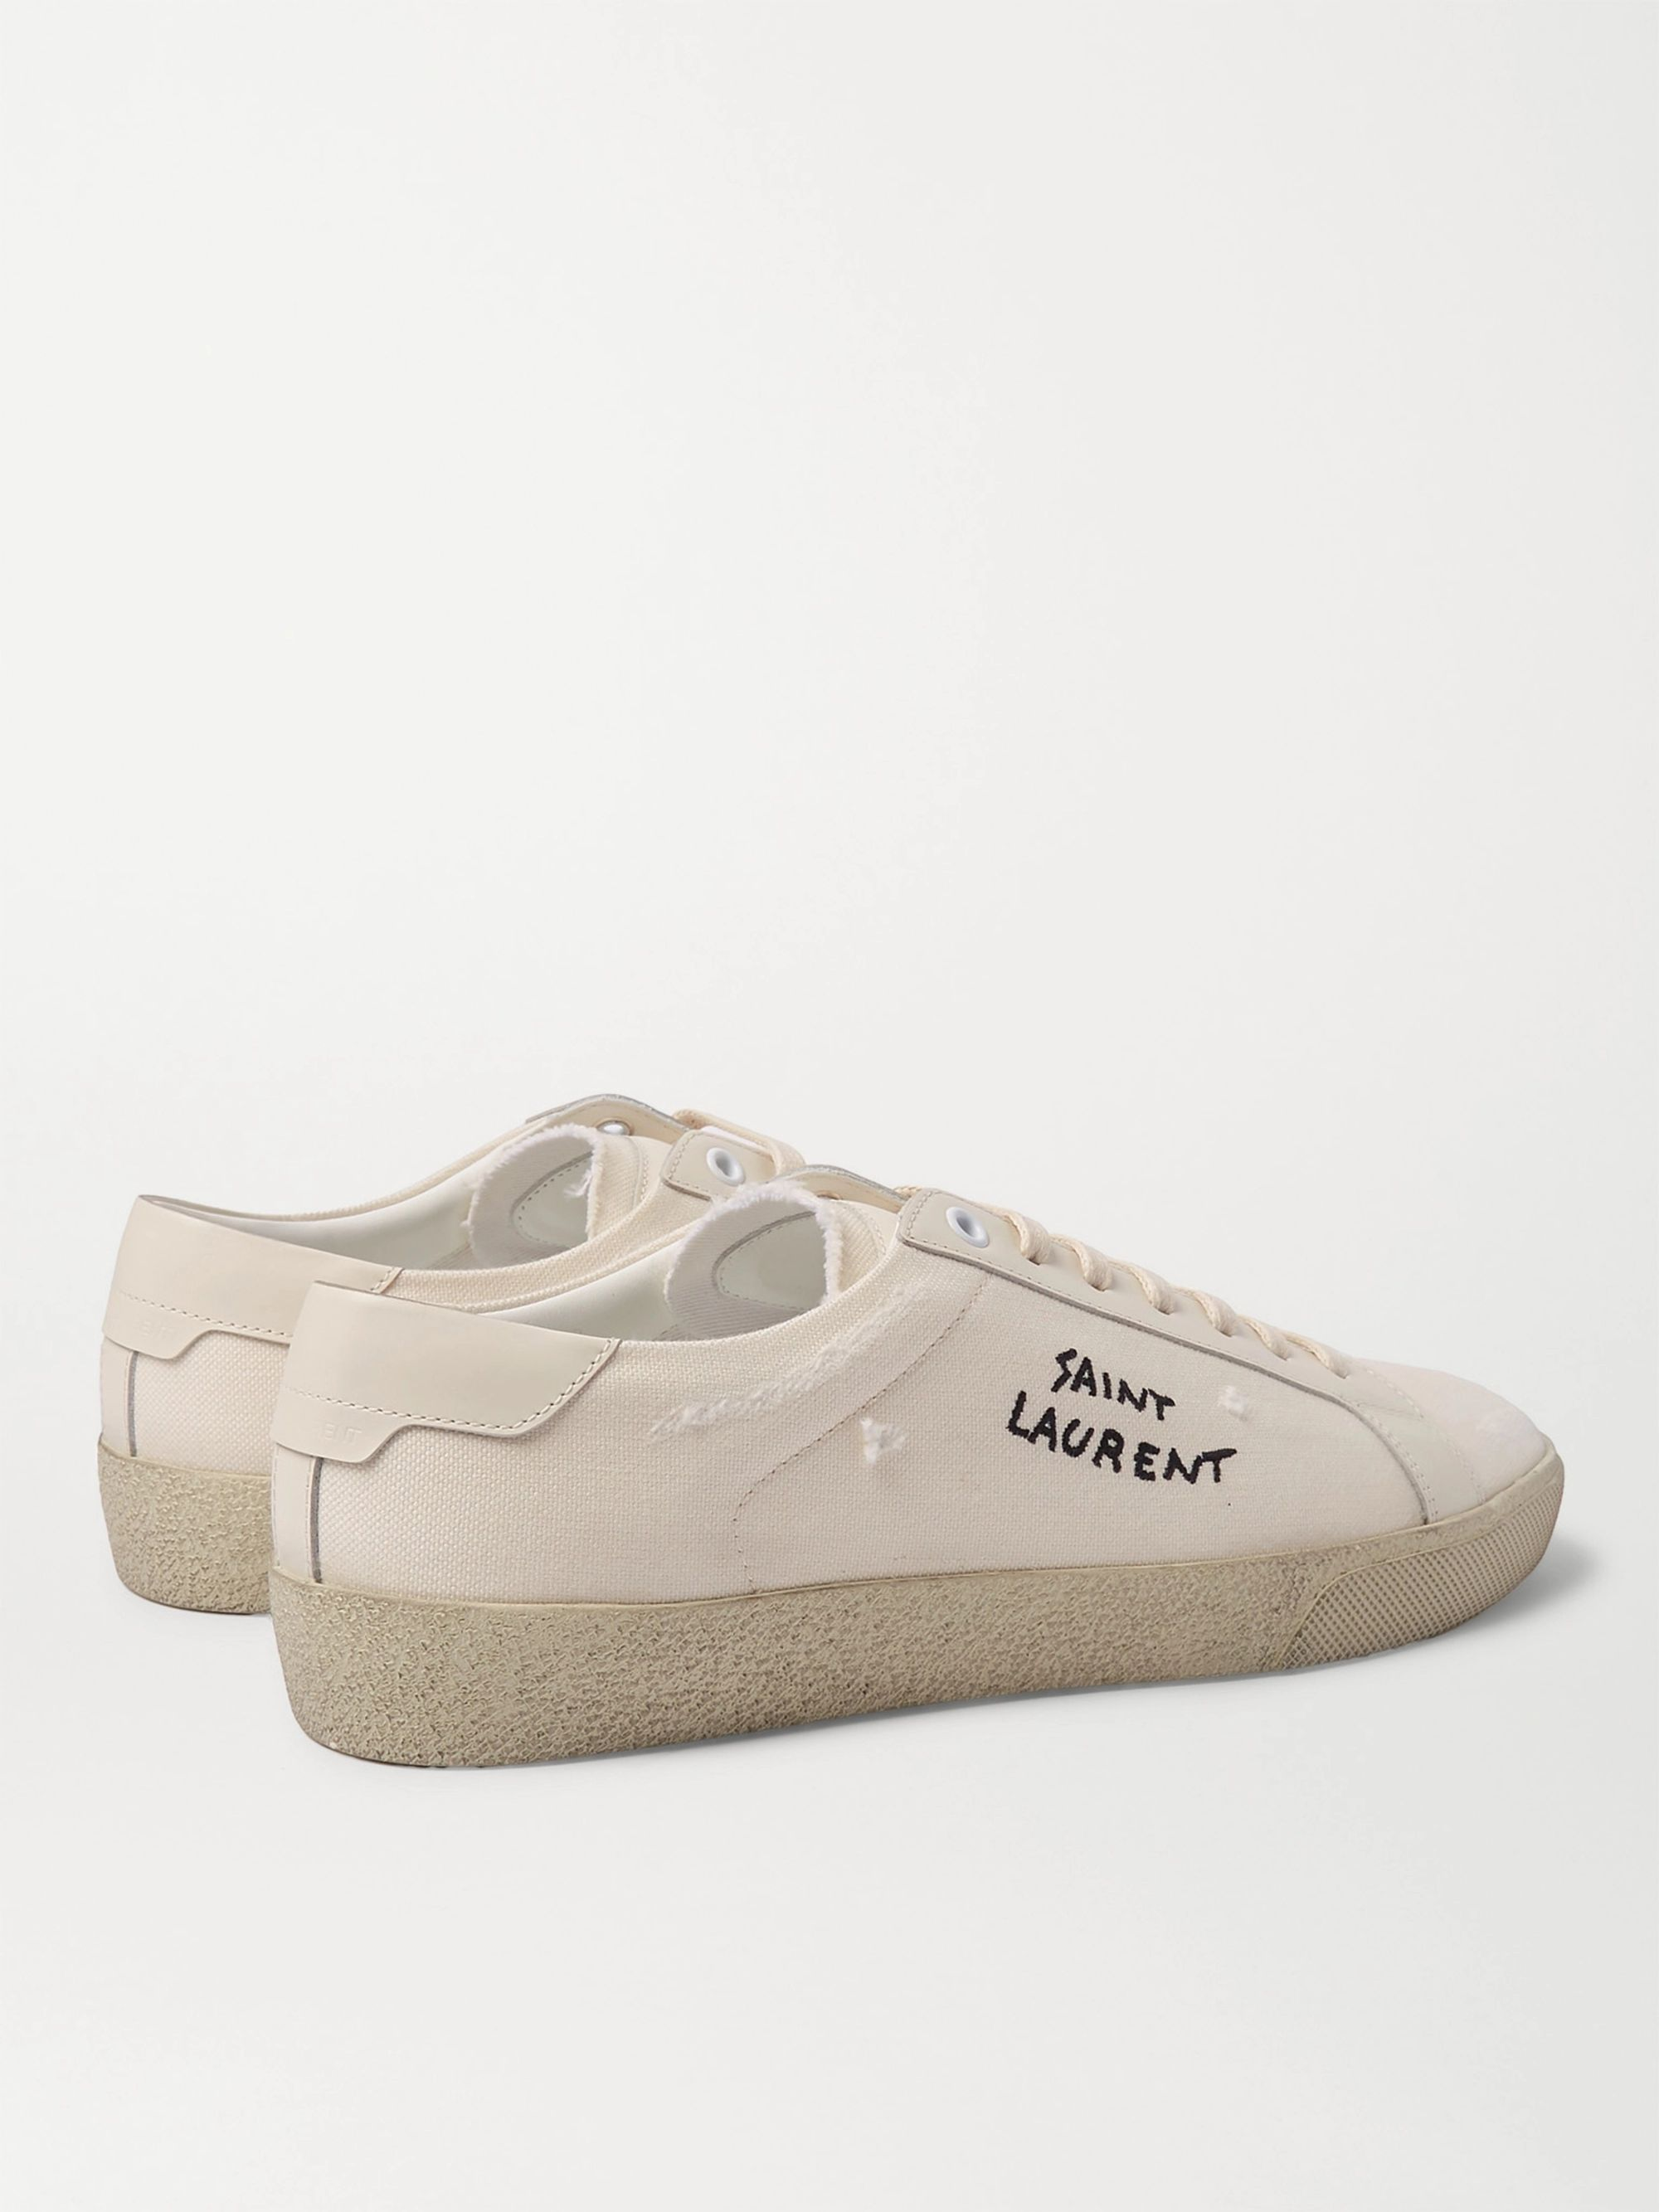 SAINT LAURENT SL/06 Court Classic Logo-Embroidered Leather Sneakers